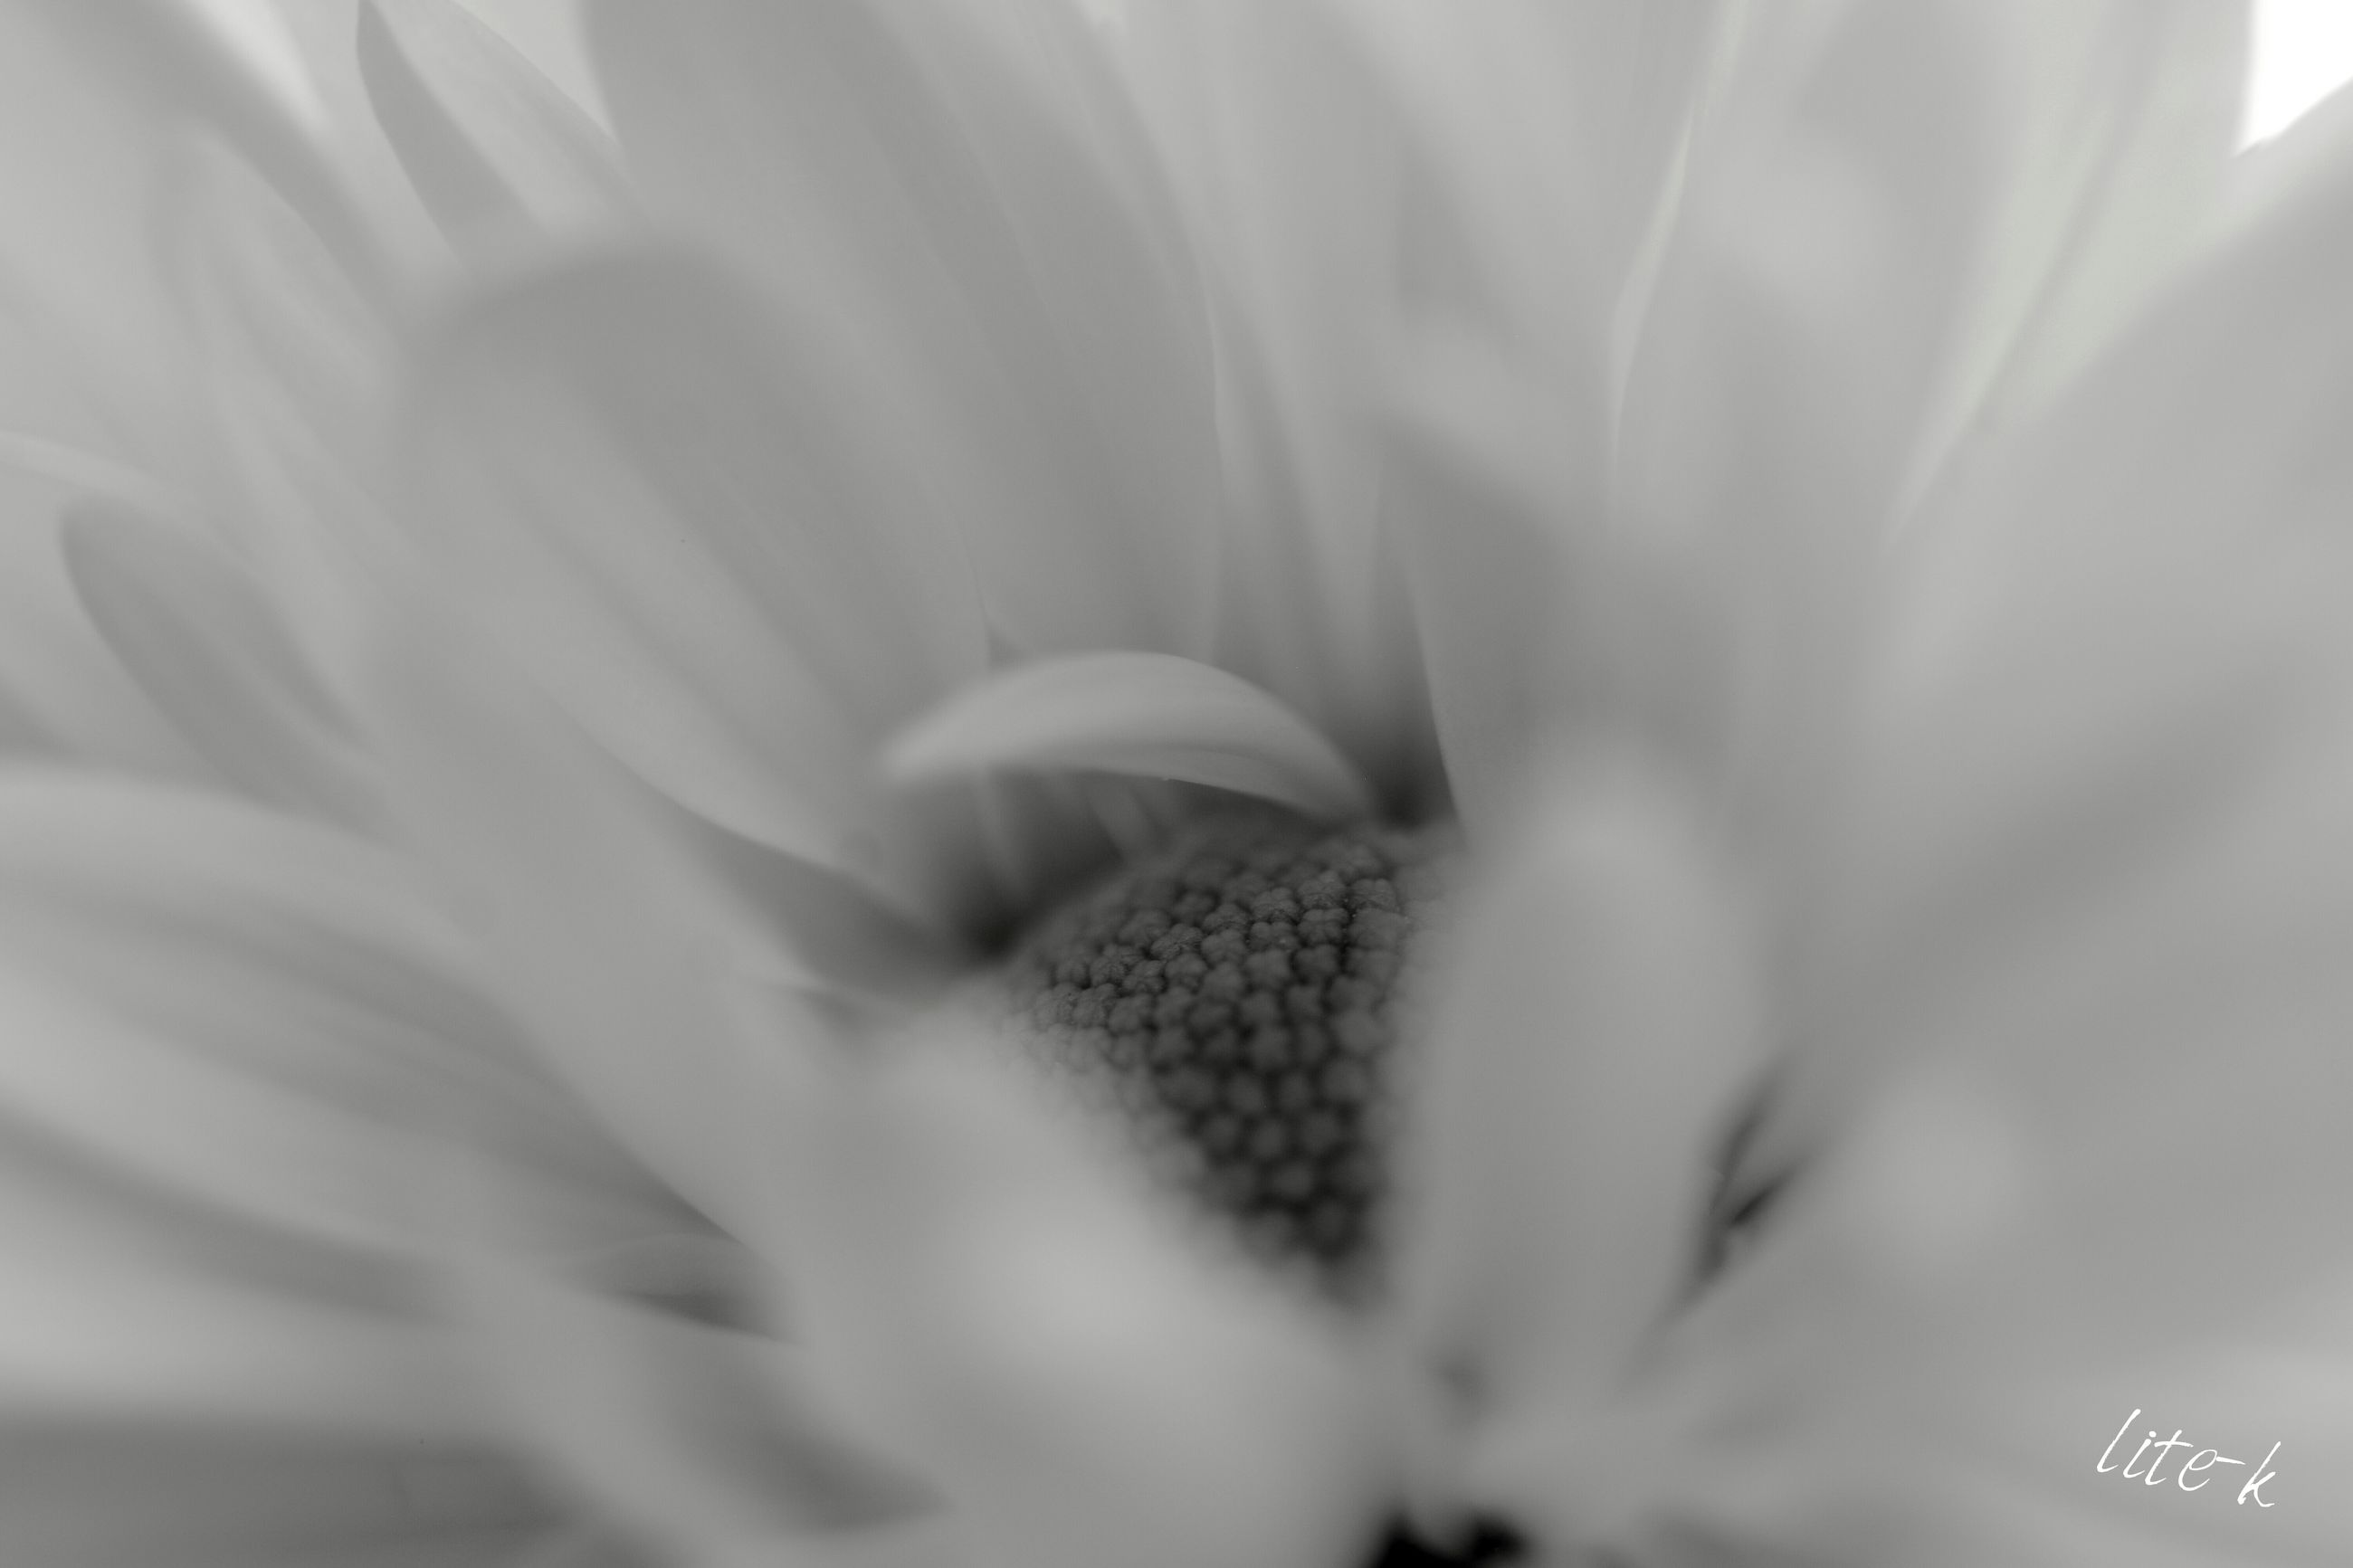 flower, freshness, flower head, petal, fragility, close-up, growth, beauty in nature, selective focus, nature, full frame, plant, blooming, backgrounds, white color, no people, focus on foreground, pollen, single flower, softness